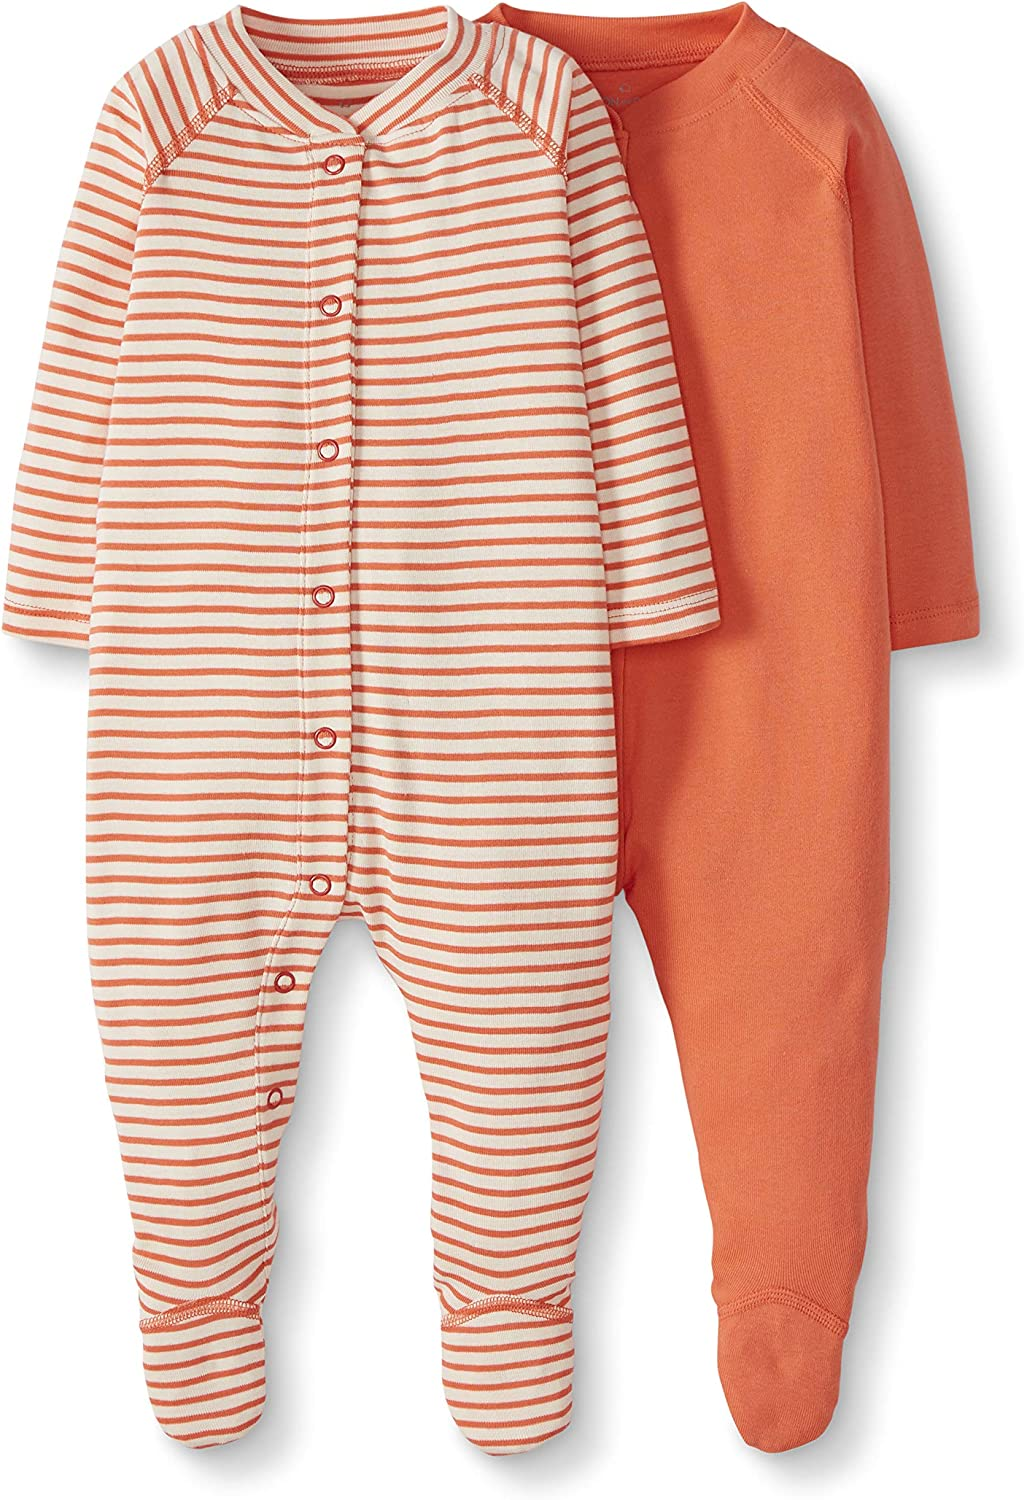 Moon and Spasm price Back by Hanna Andersson 2-Pack Unisex Cott Organic Baby unisex